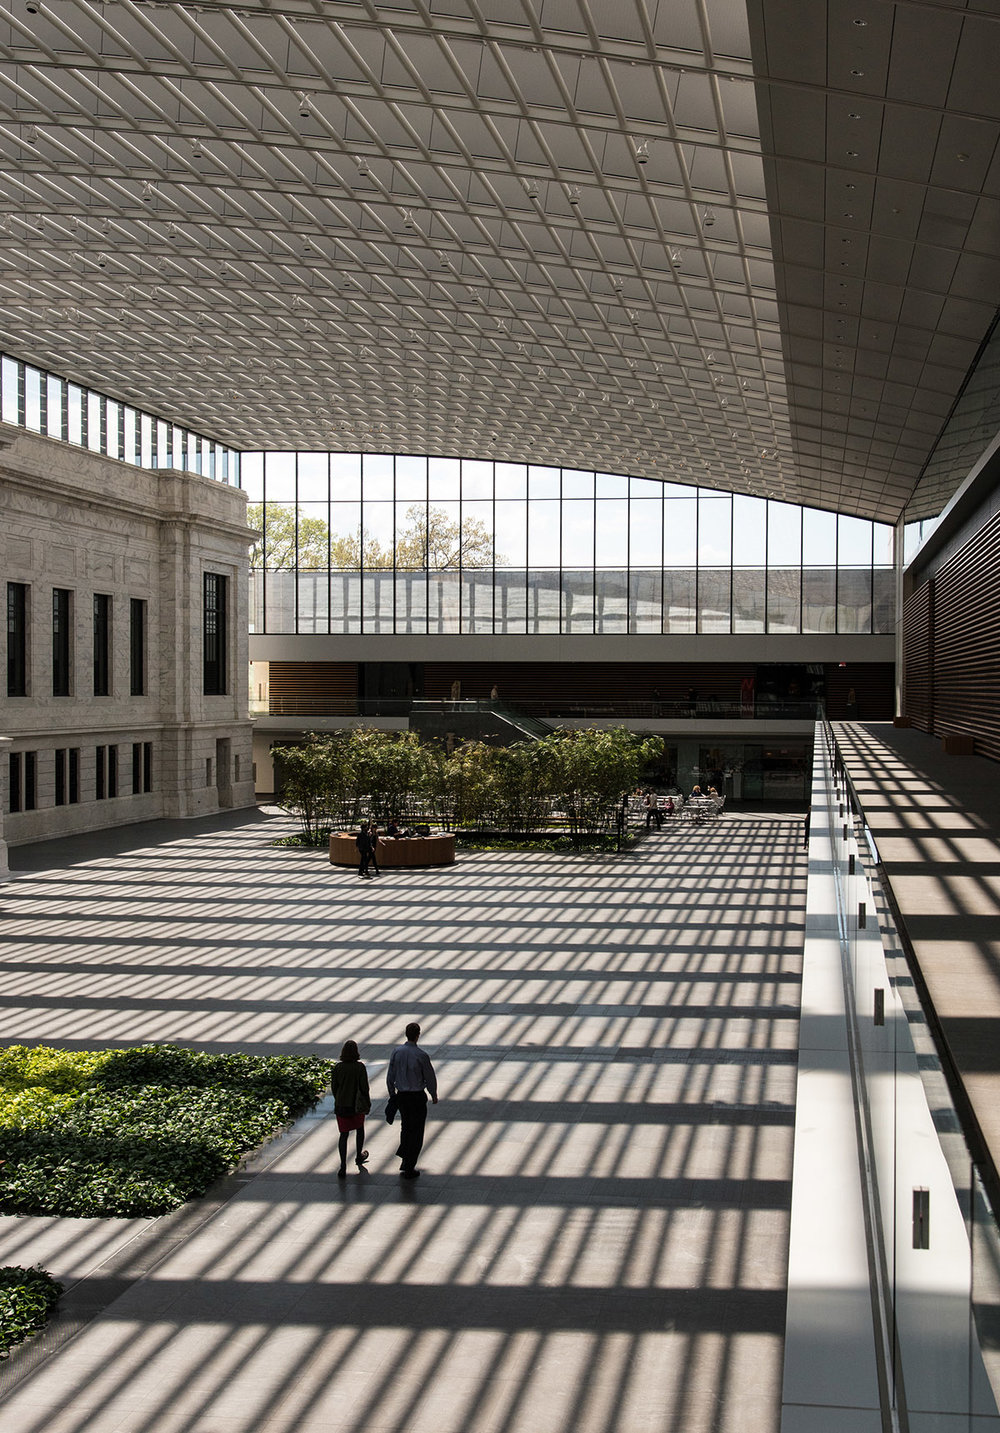 Atrium of the Cleveland Museum of Art.